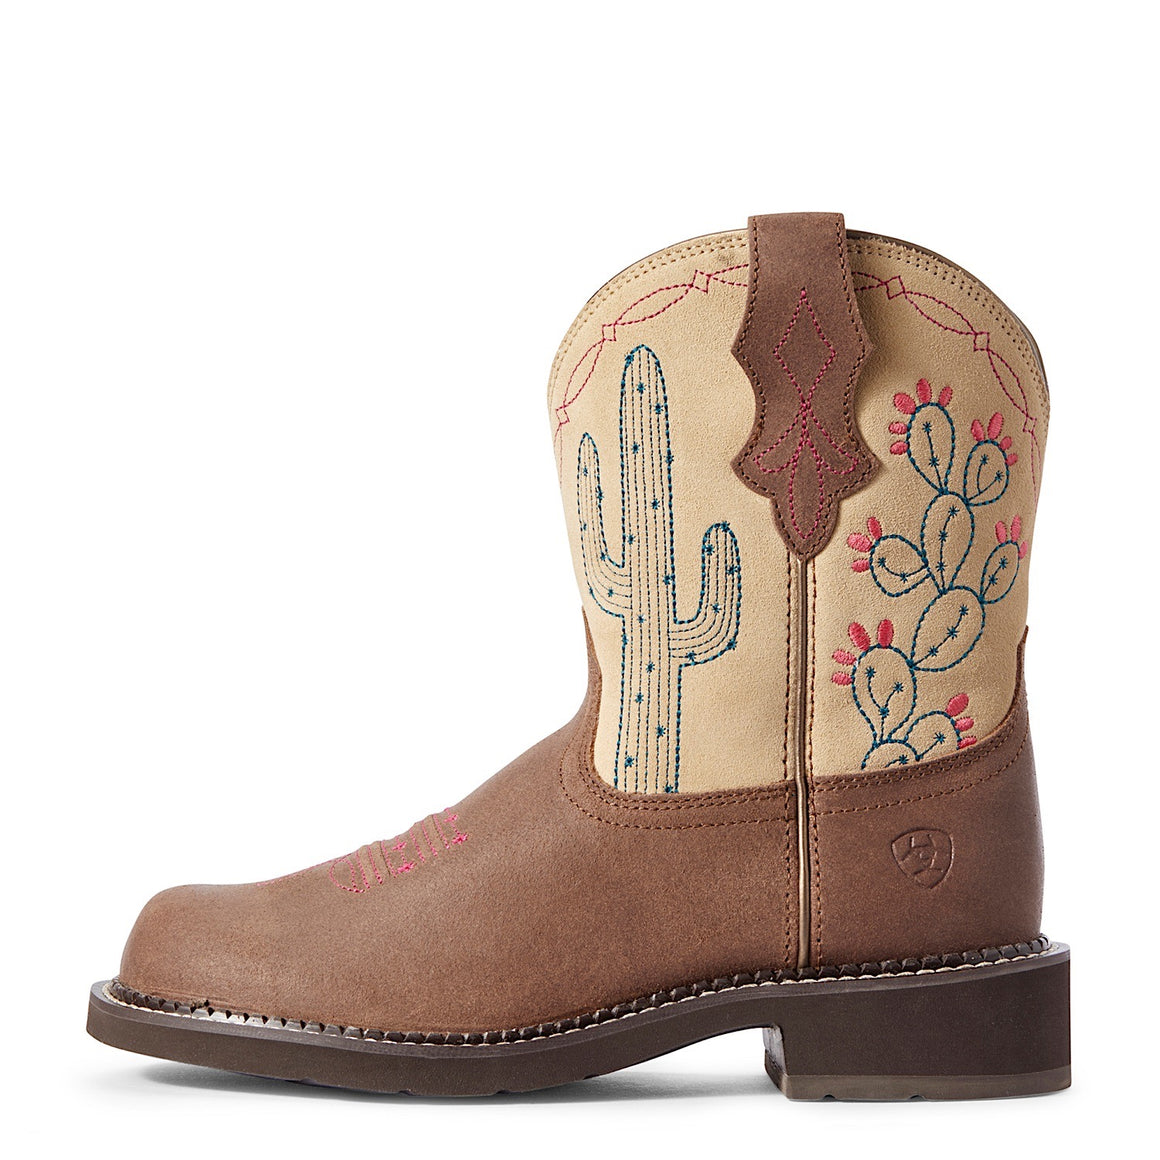 Ariat Womens Fatbaby Heritage Western Boot Desert Brown Barley/Sand